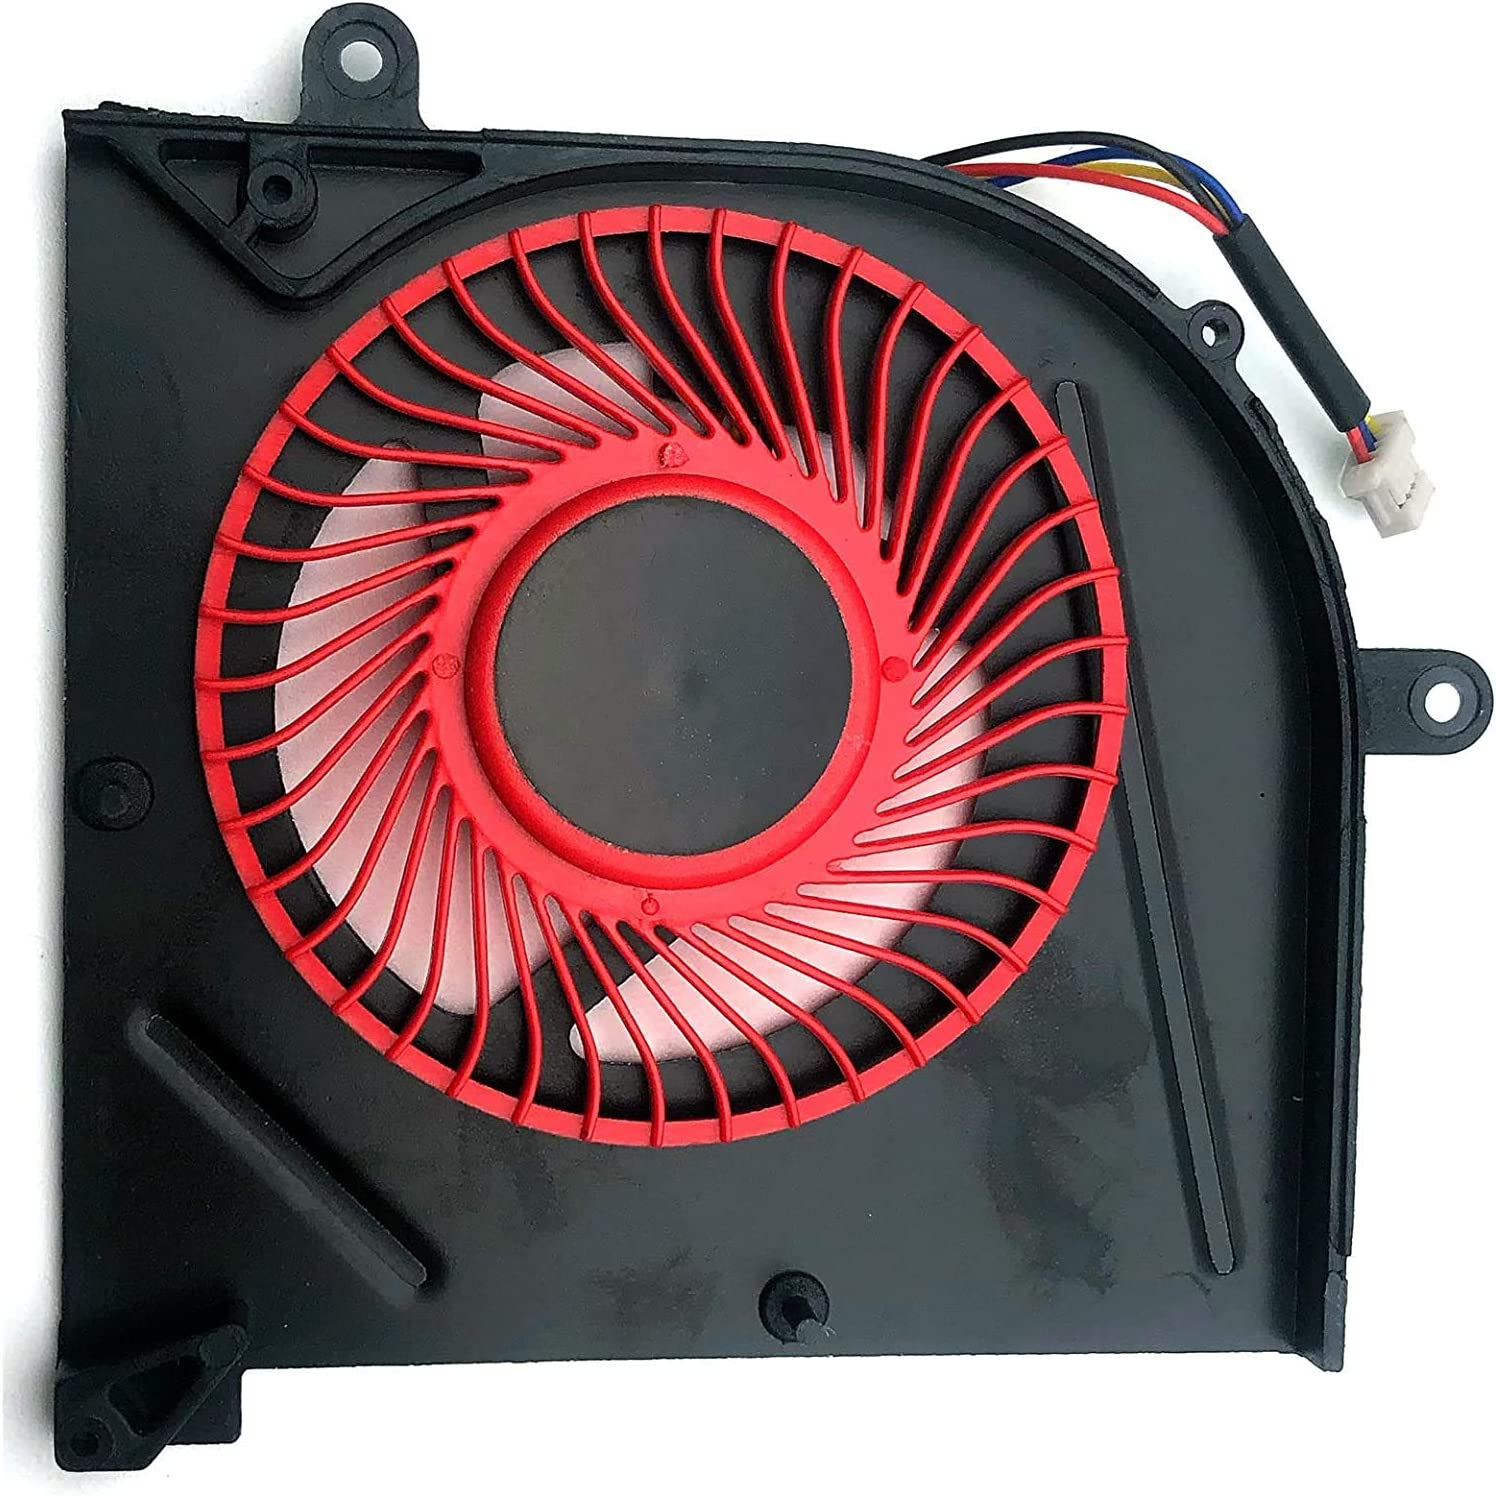 GAOCHENG Laptop CPU Fan for Max 83% OFF MSI 8SG GS65 2070MaxQ RTX2060 Max 88% OFF 2080Ma